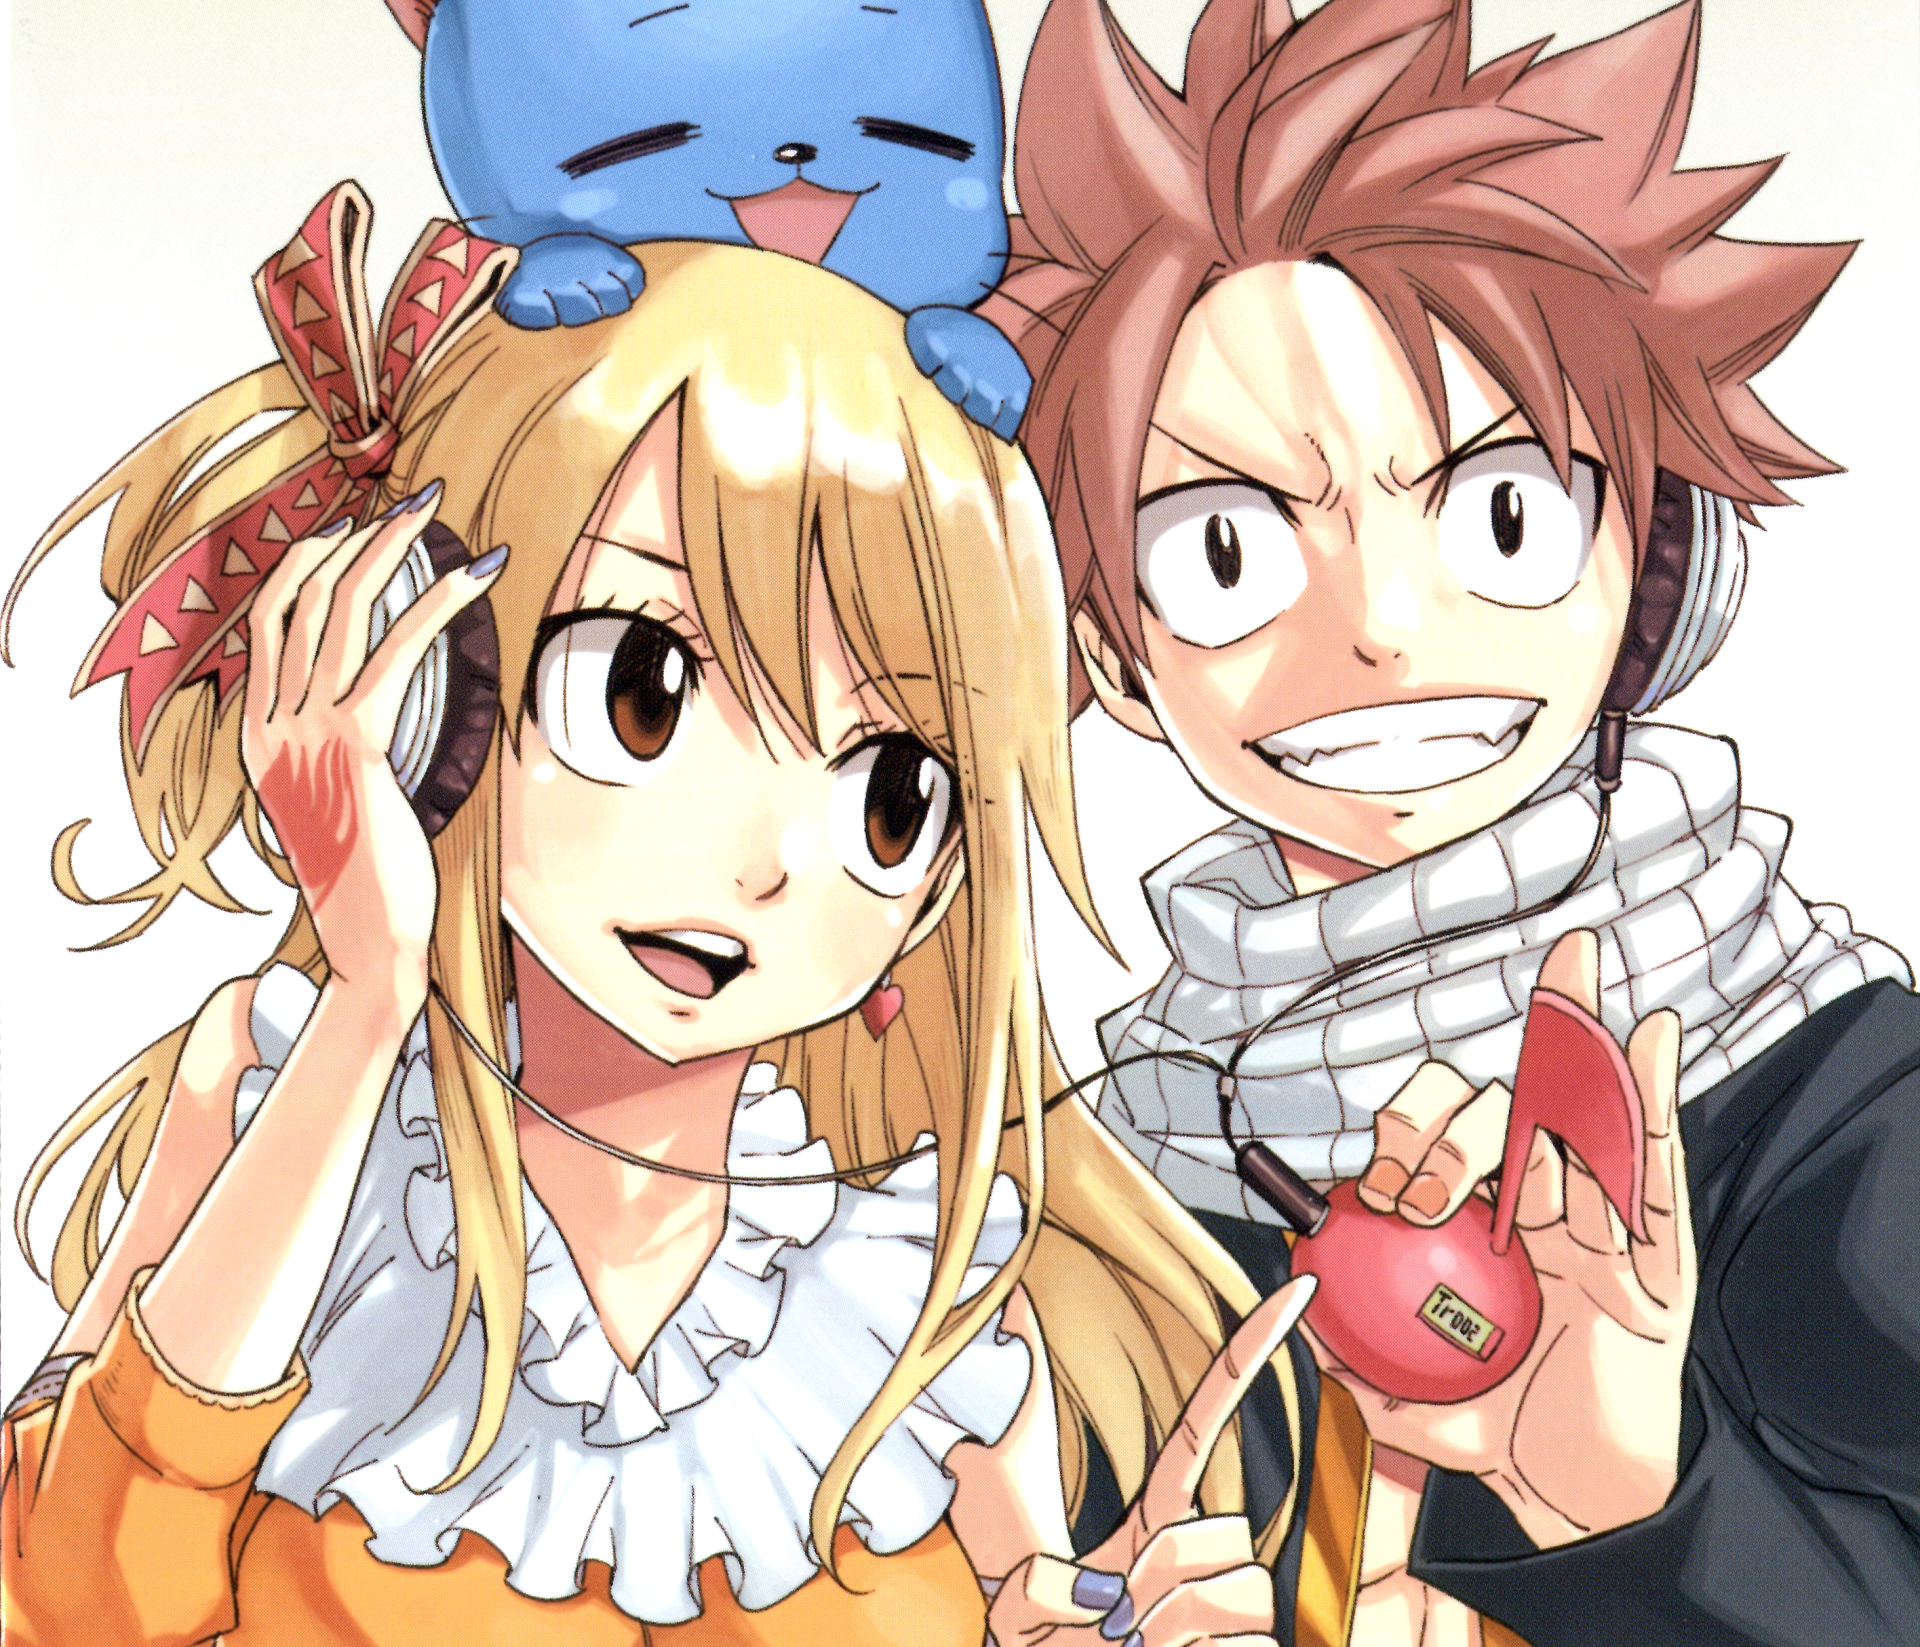 Anime Fairy Tail Natsu Dragneel Happy Fairy Tail Lucy